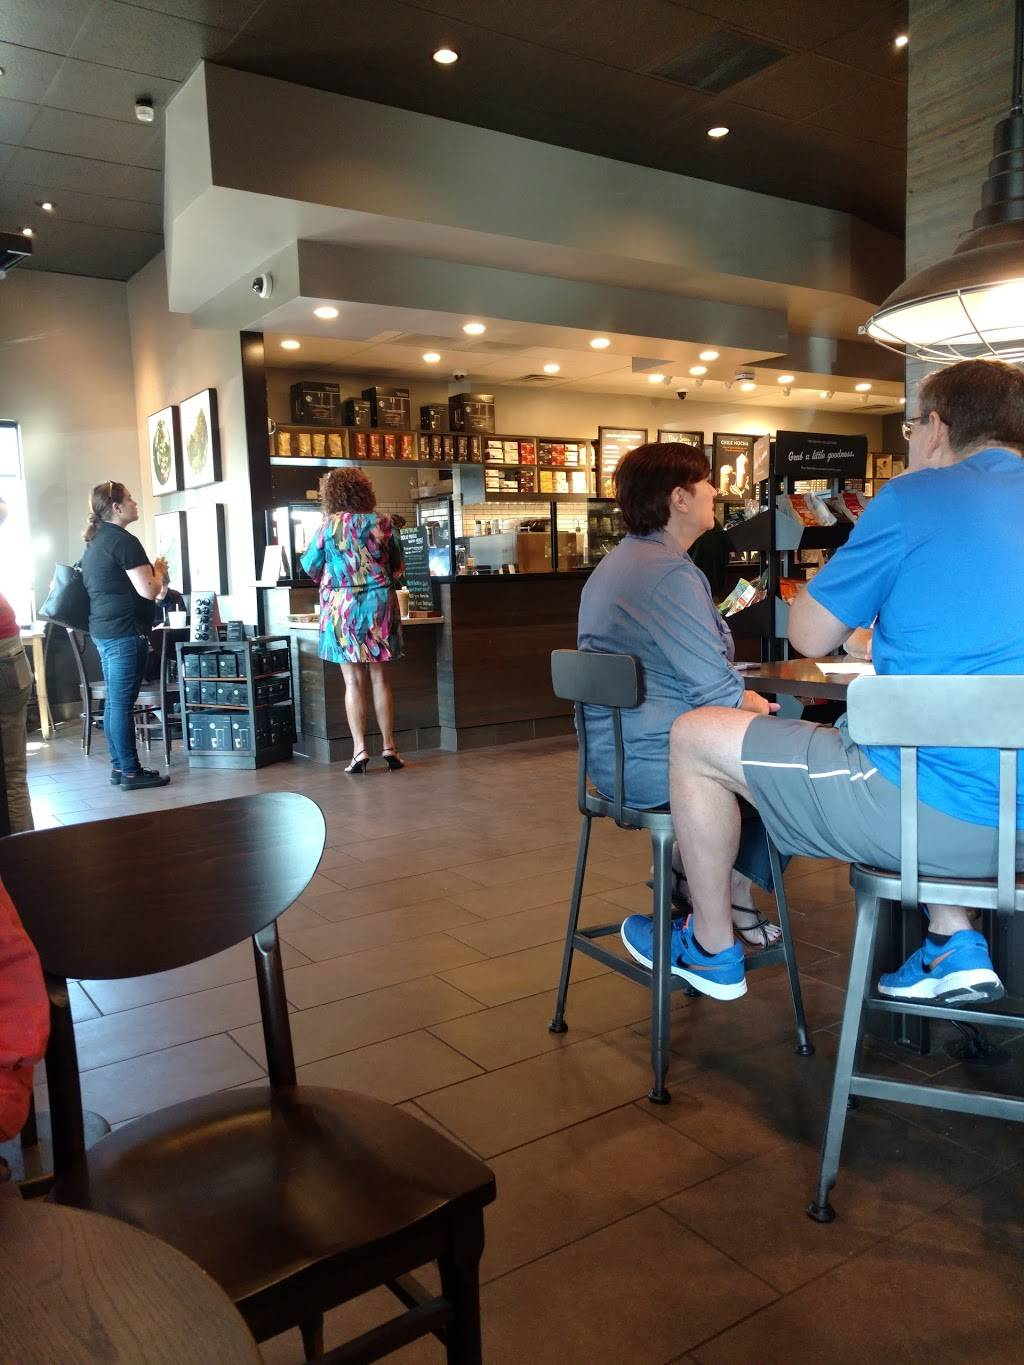 Starbucks | cafe | 1201 24th St c100, Bakersfield, CA 93301, USA | 6613241267 OR +1 661-324-1267